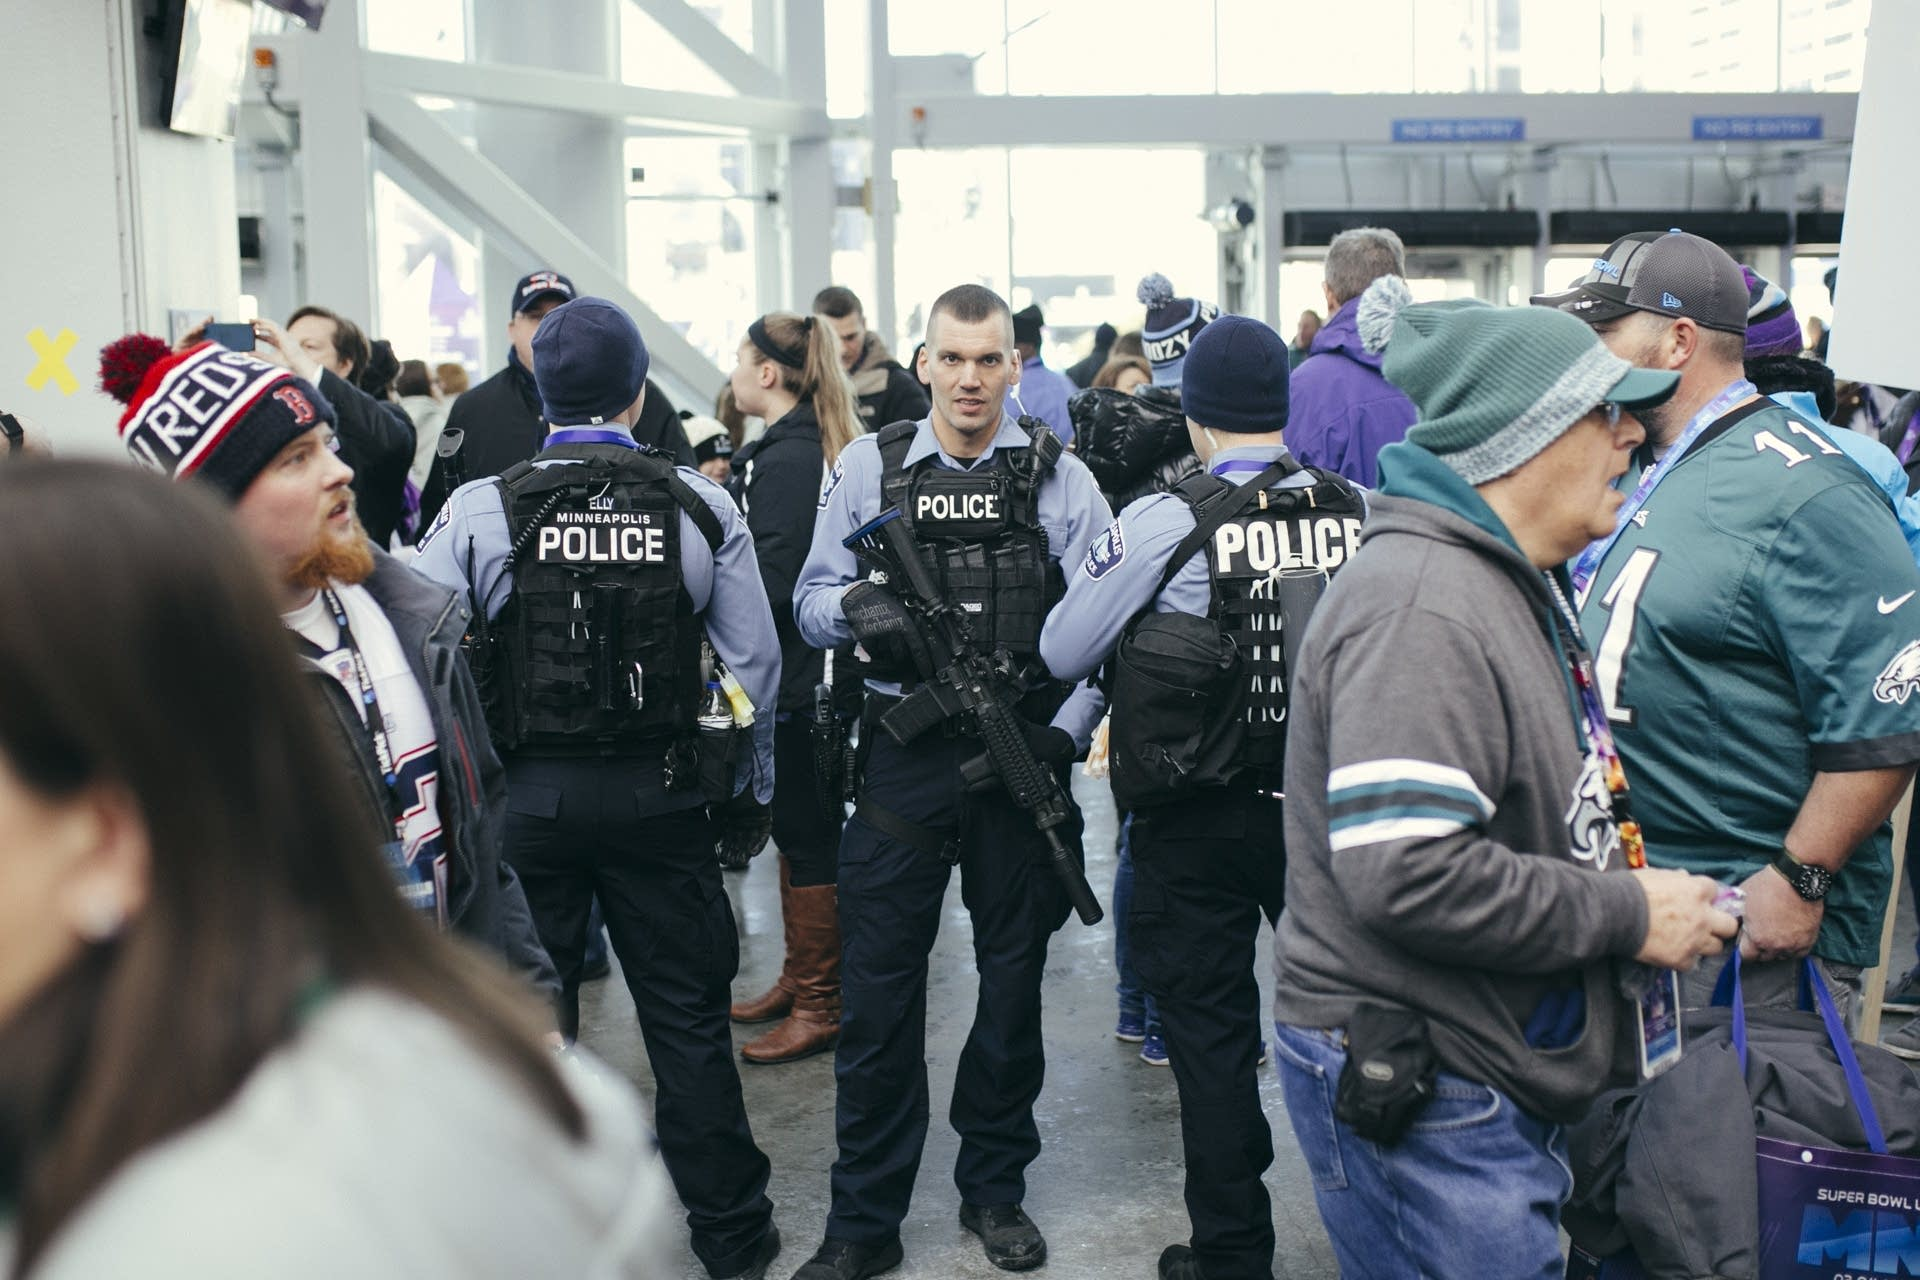 Minneapolis police stand on guard with assault rifles inside the stadium.